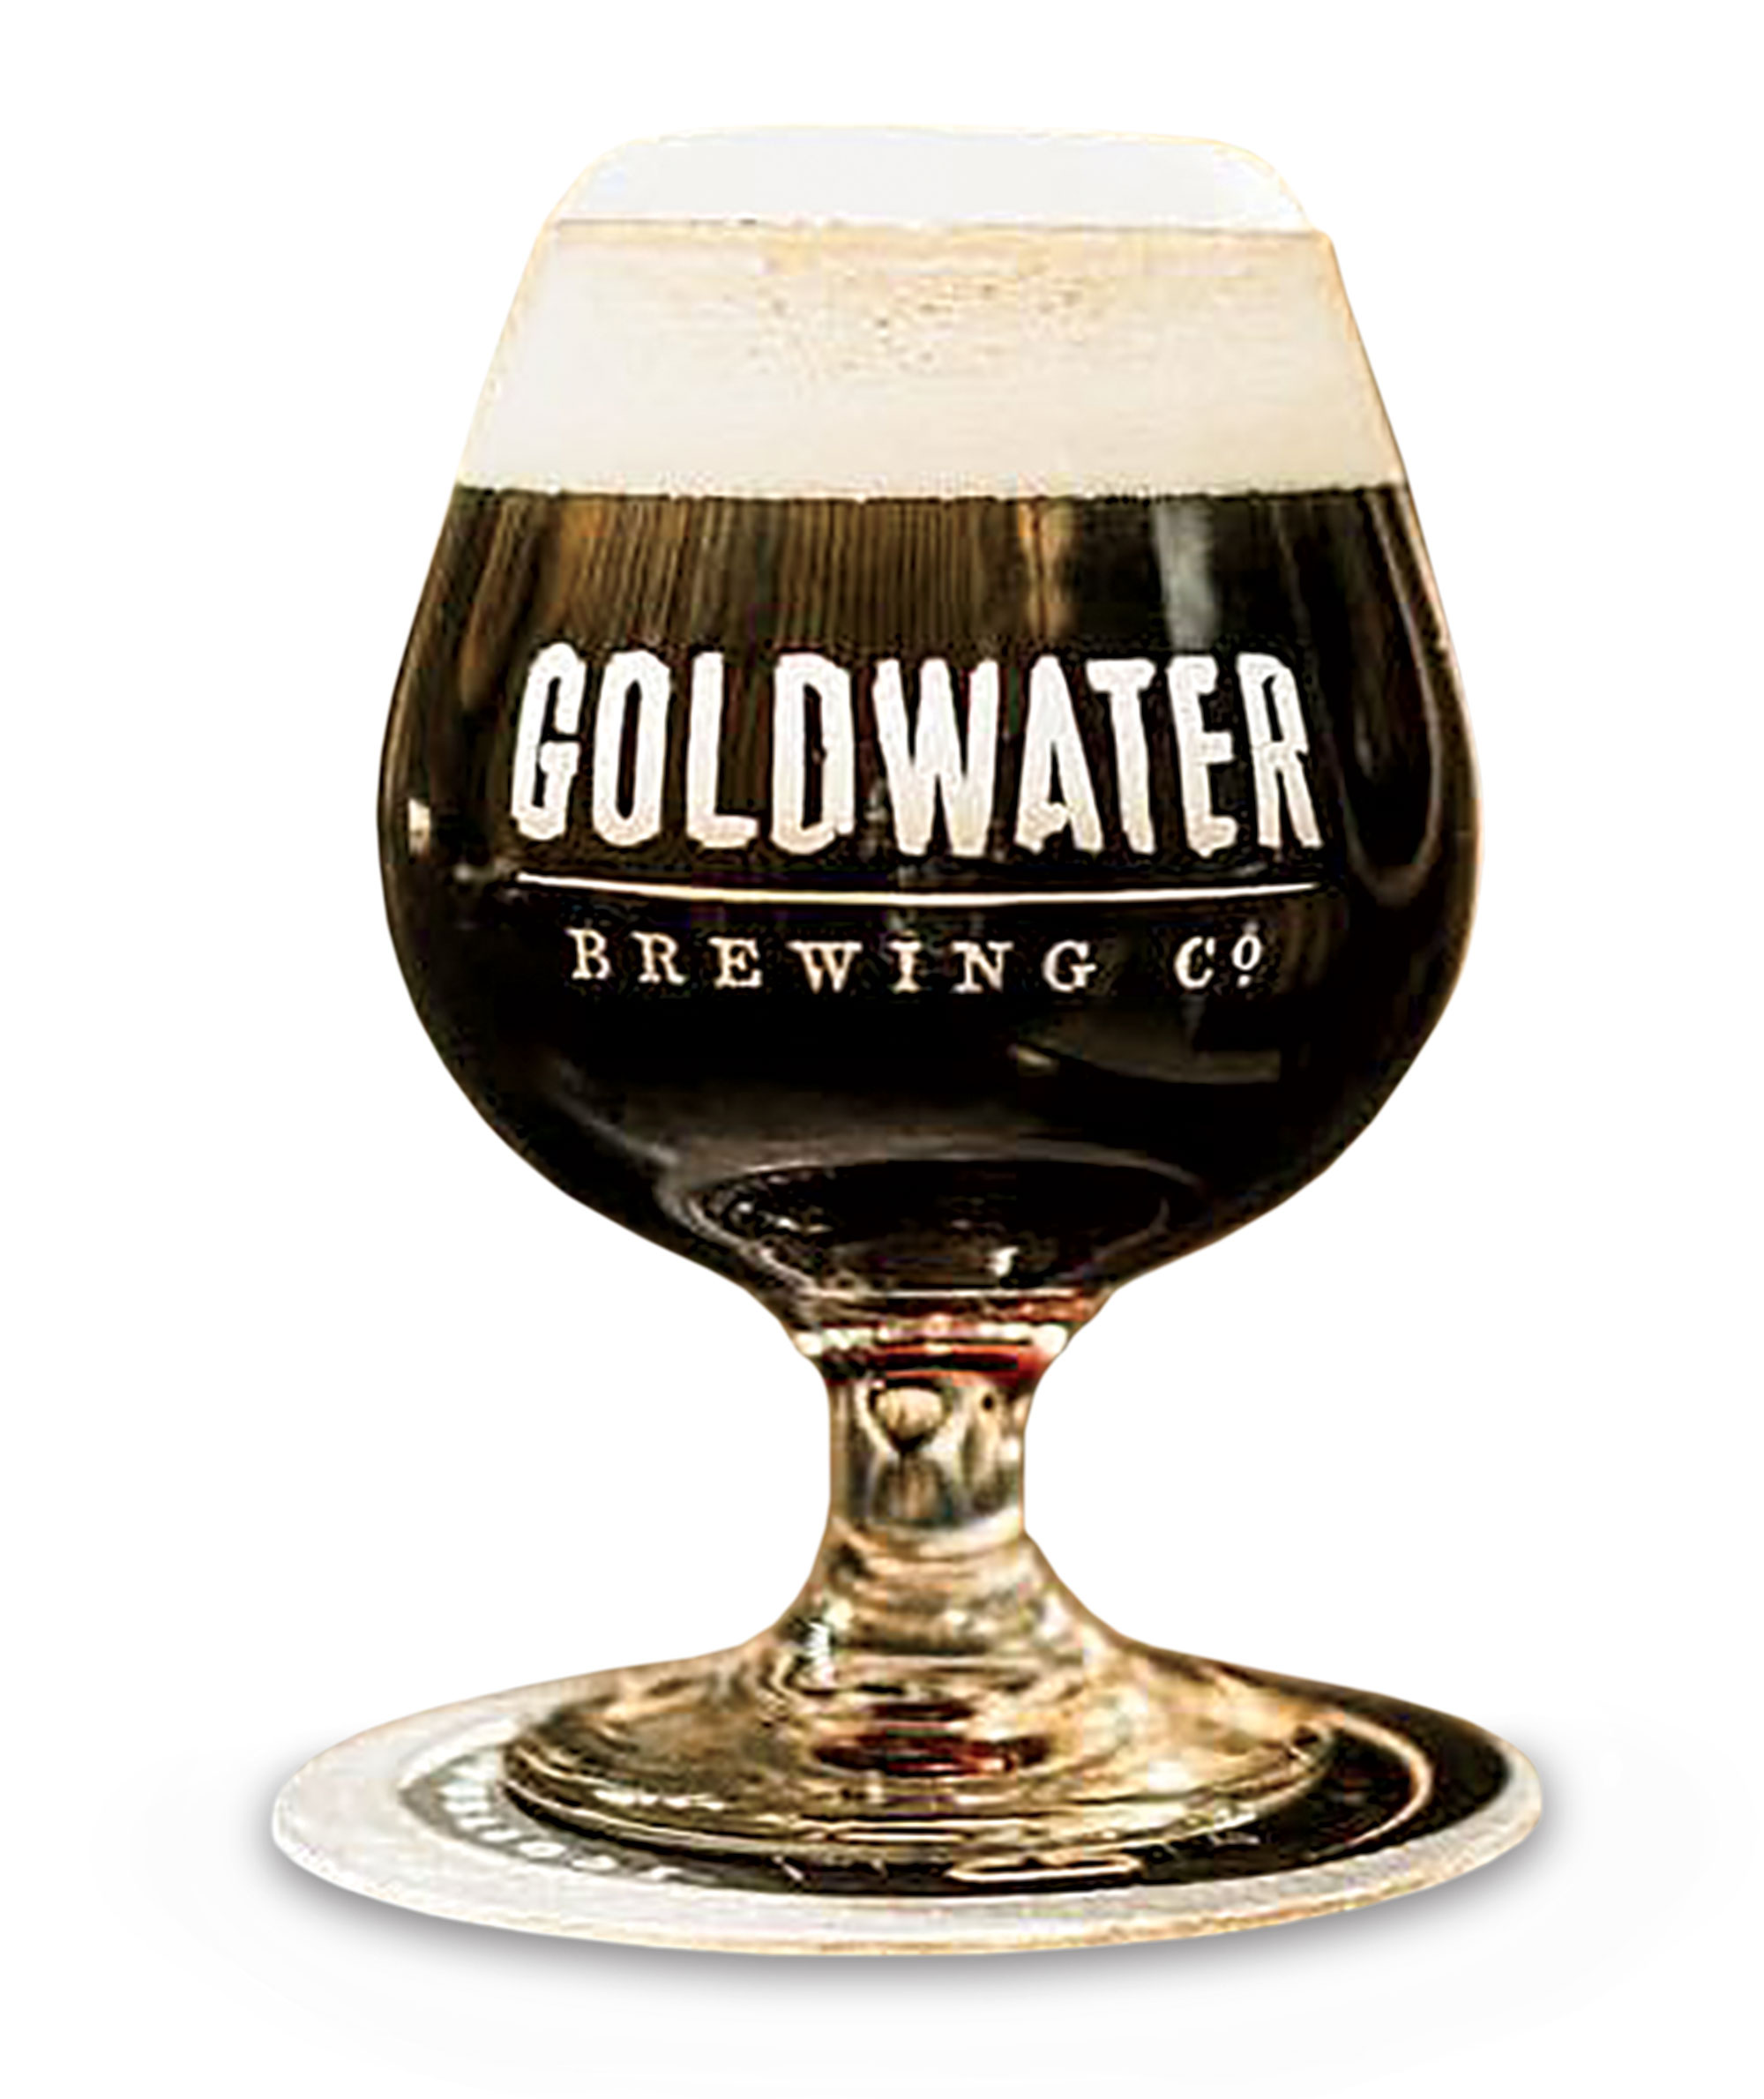 Photo courtesy Goldwater Brewing Co.